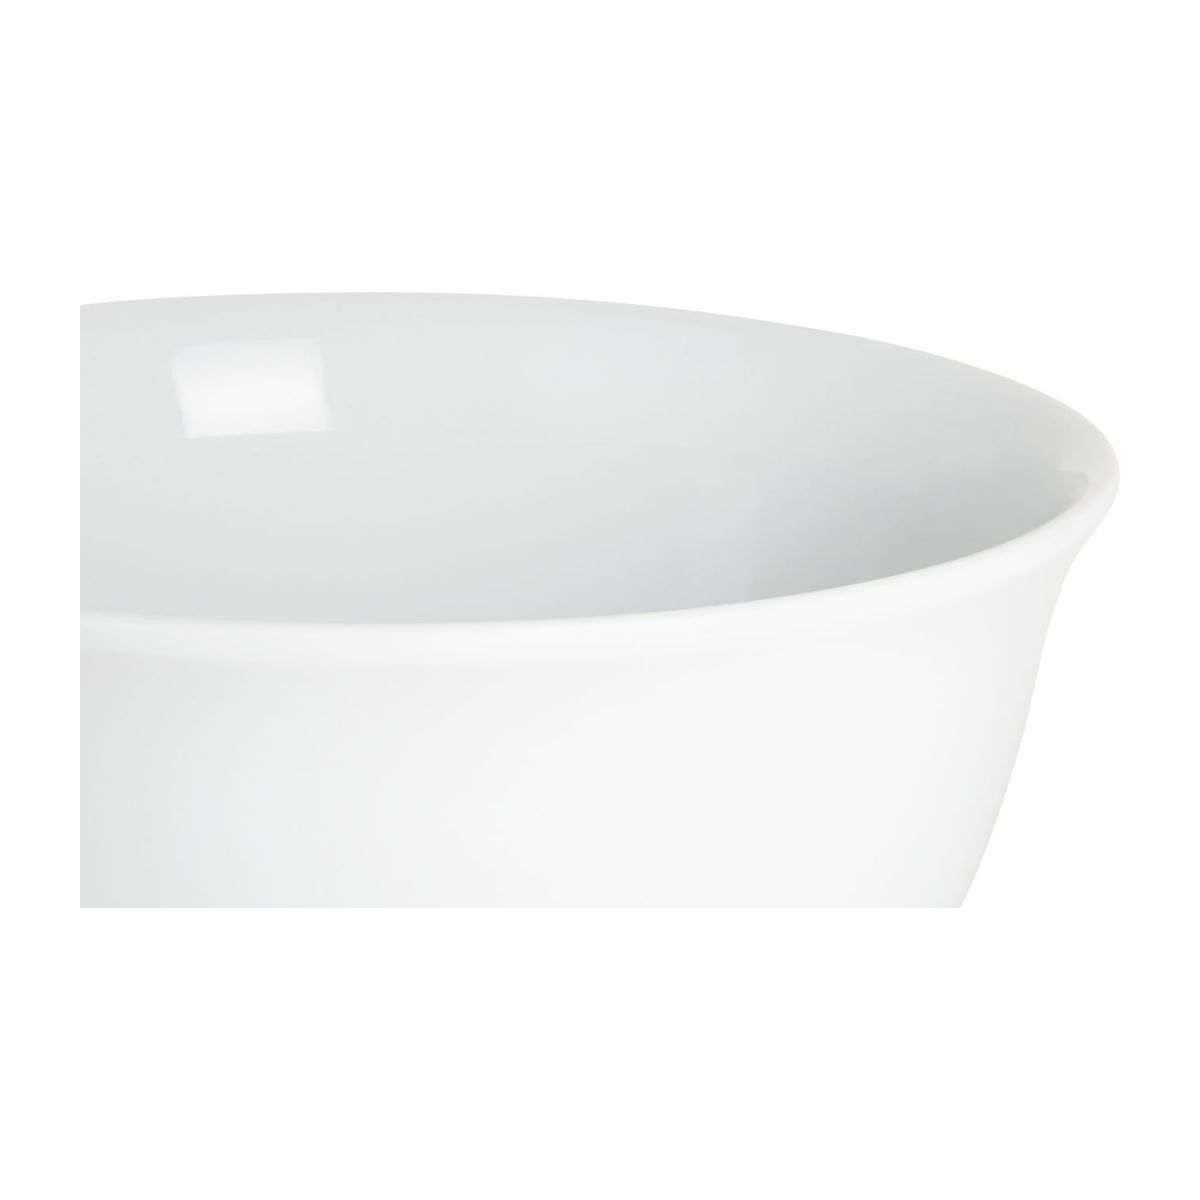 Mixing bowl in porcelain, white 23cm n°2